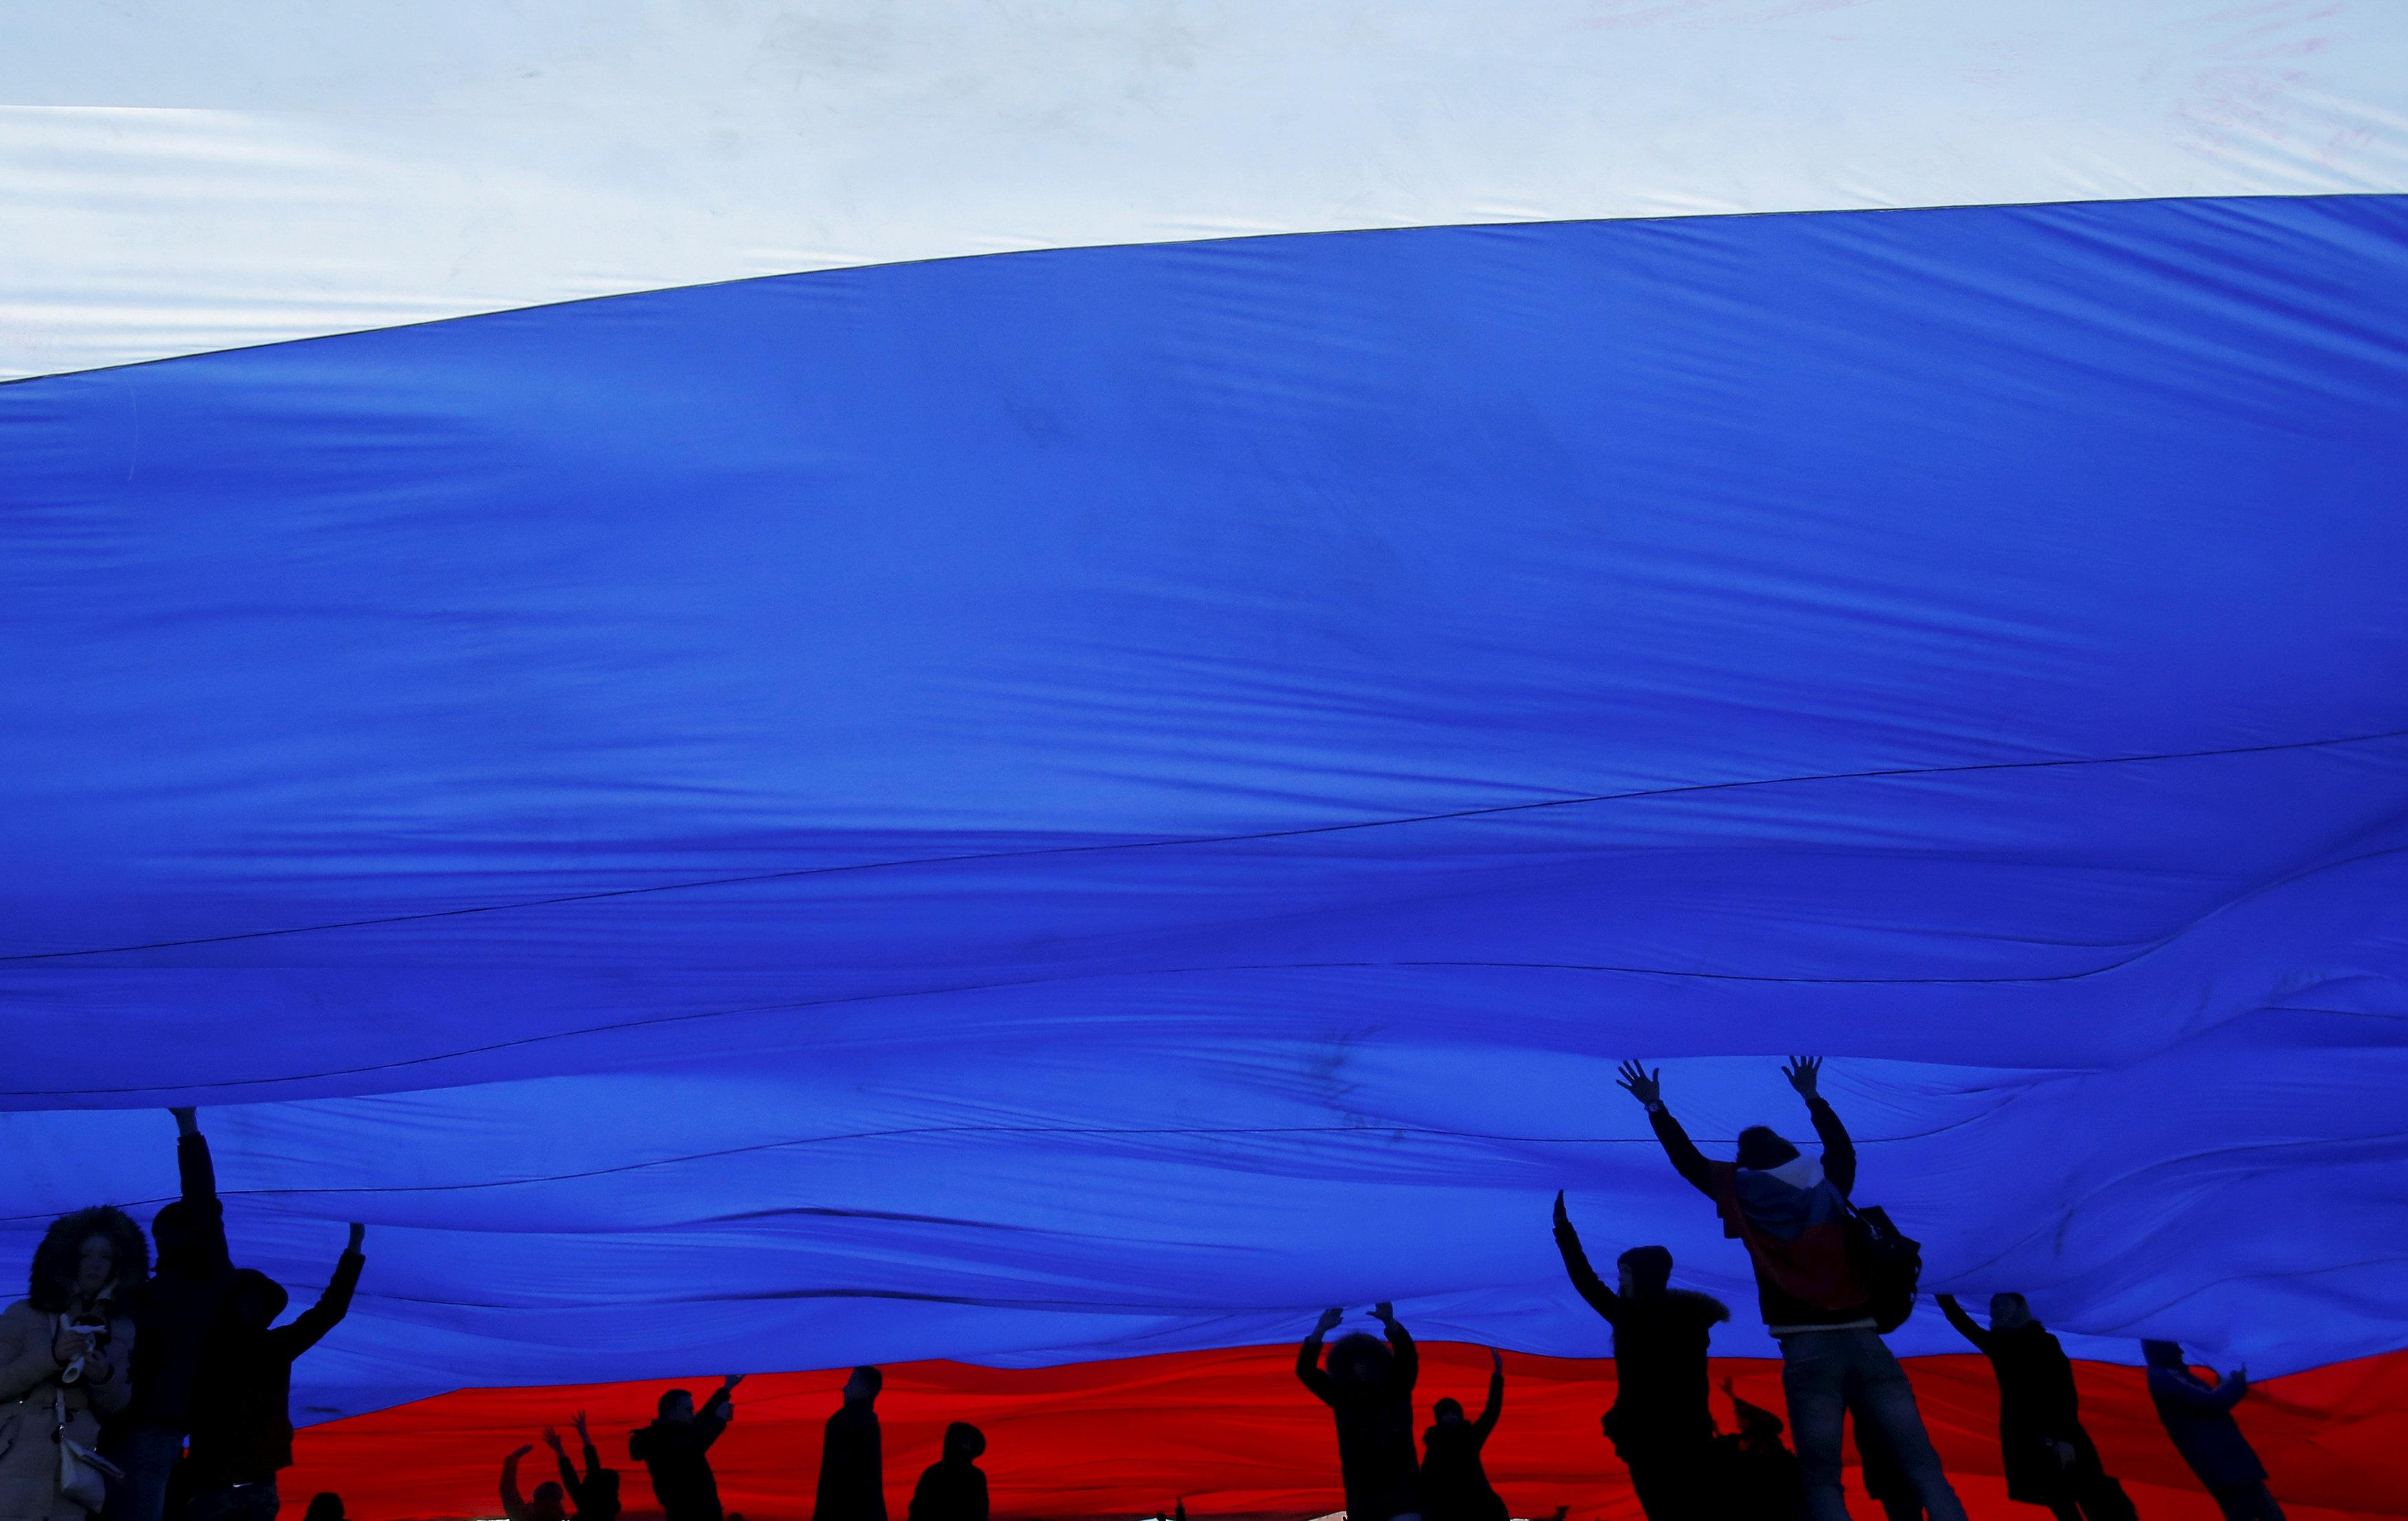 People hold a giant Russian national flag during a festive concert marking the second anniversary of Russia's annexation of the Crimea region, in Red Square in central Moscow, Russia March 18, 2016.  Maxim Shemetov